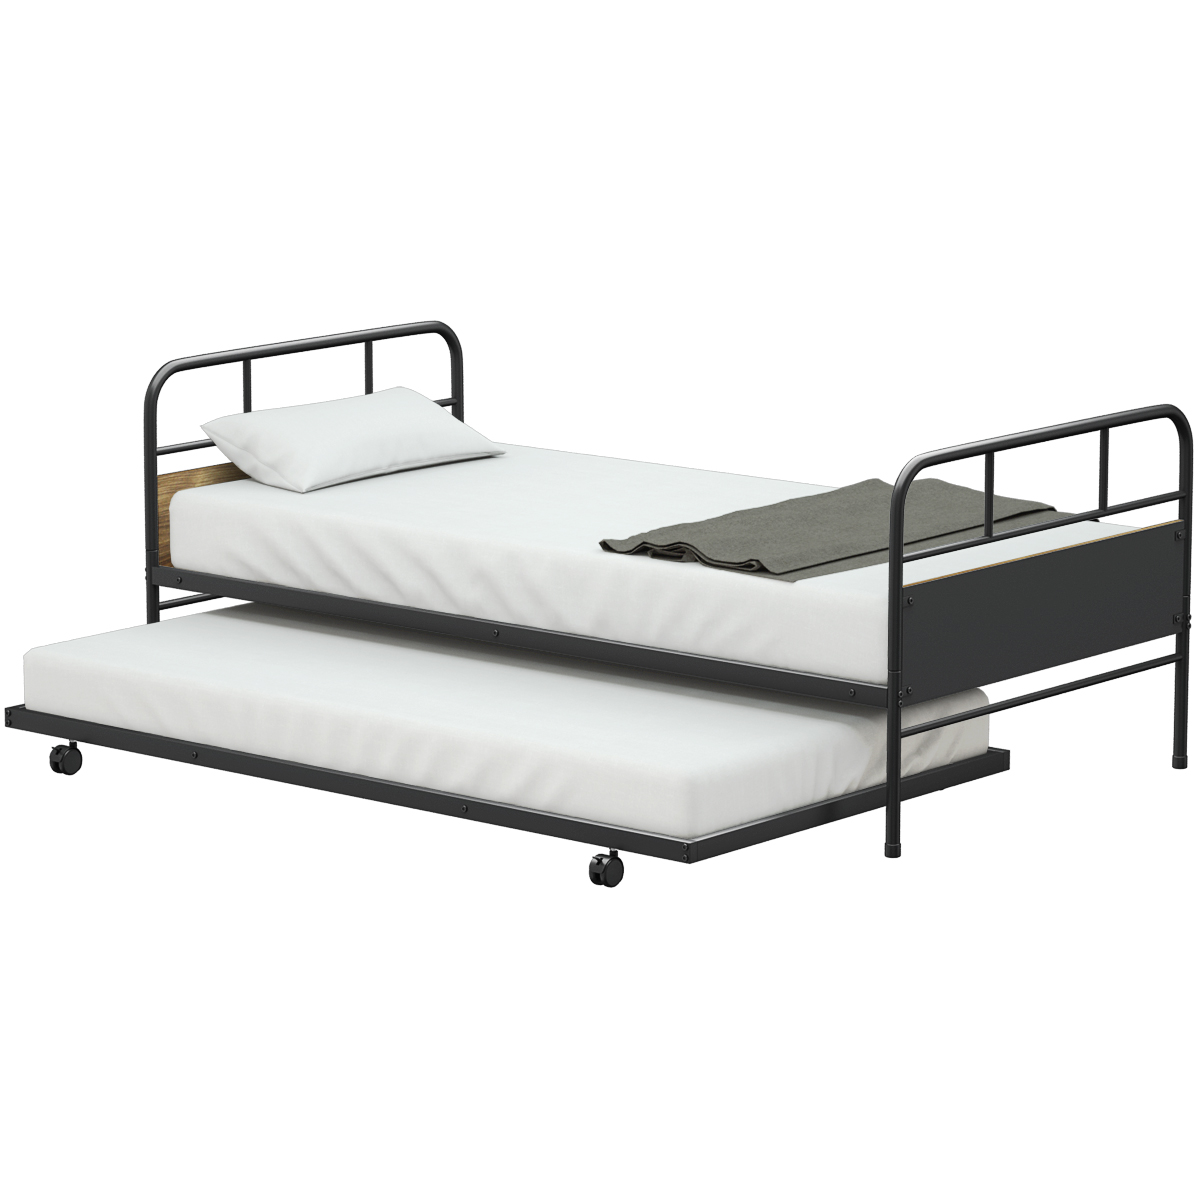 Costway Twin Trundle Day Bed Twin Daybed Trundle Frame Set Walmart Com Walmart Com